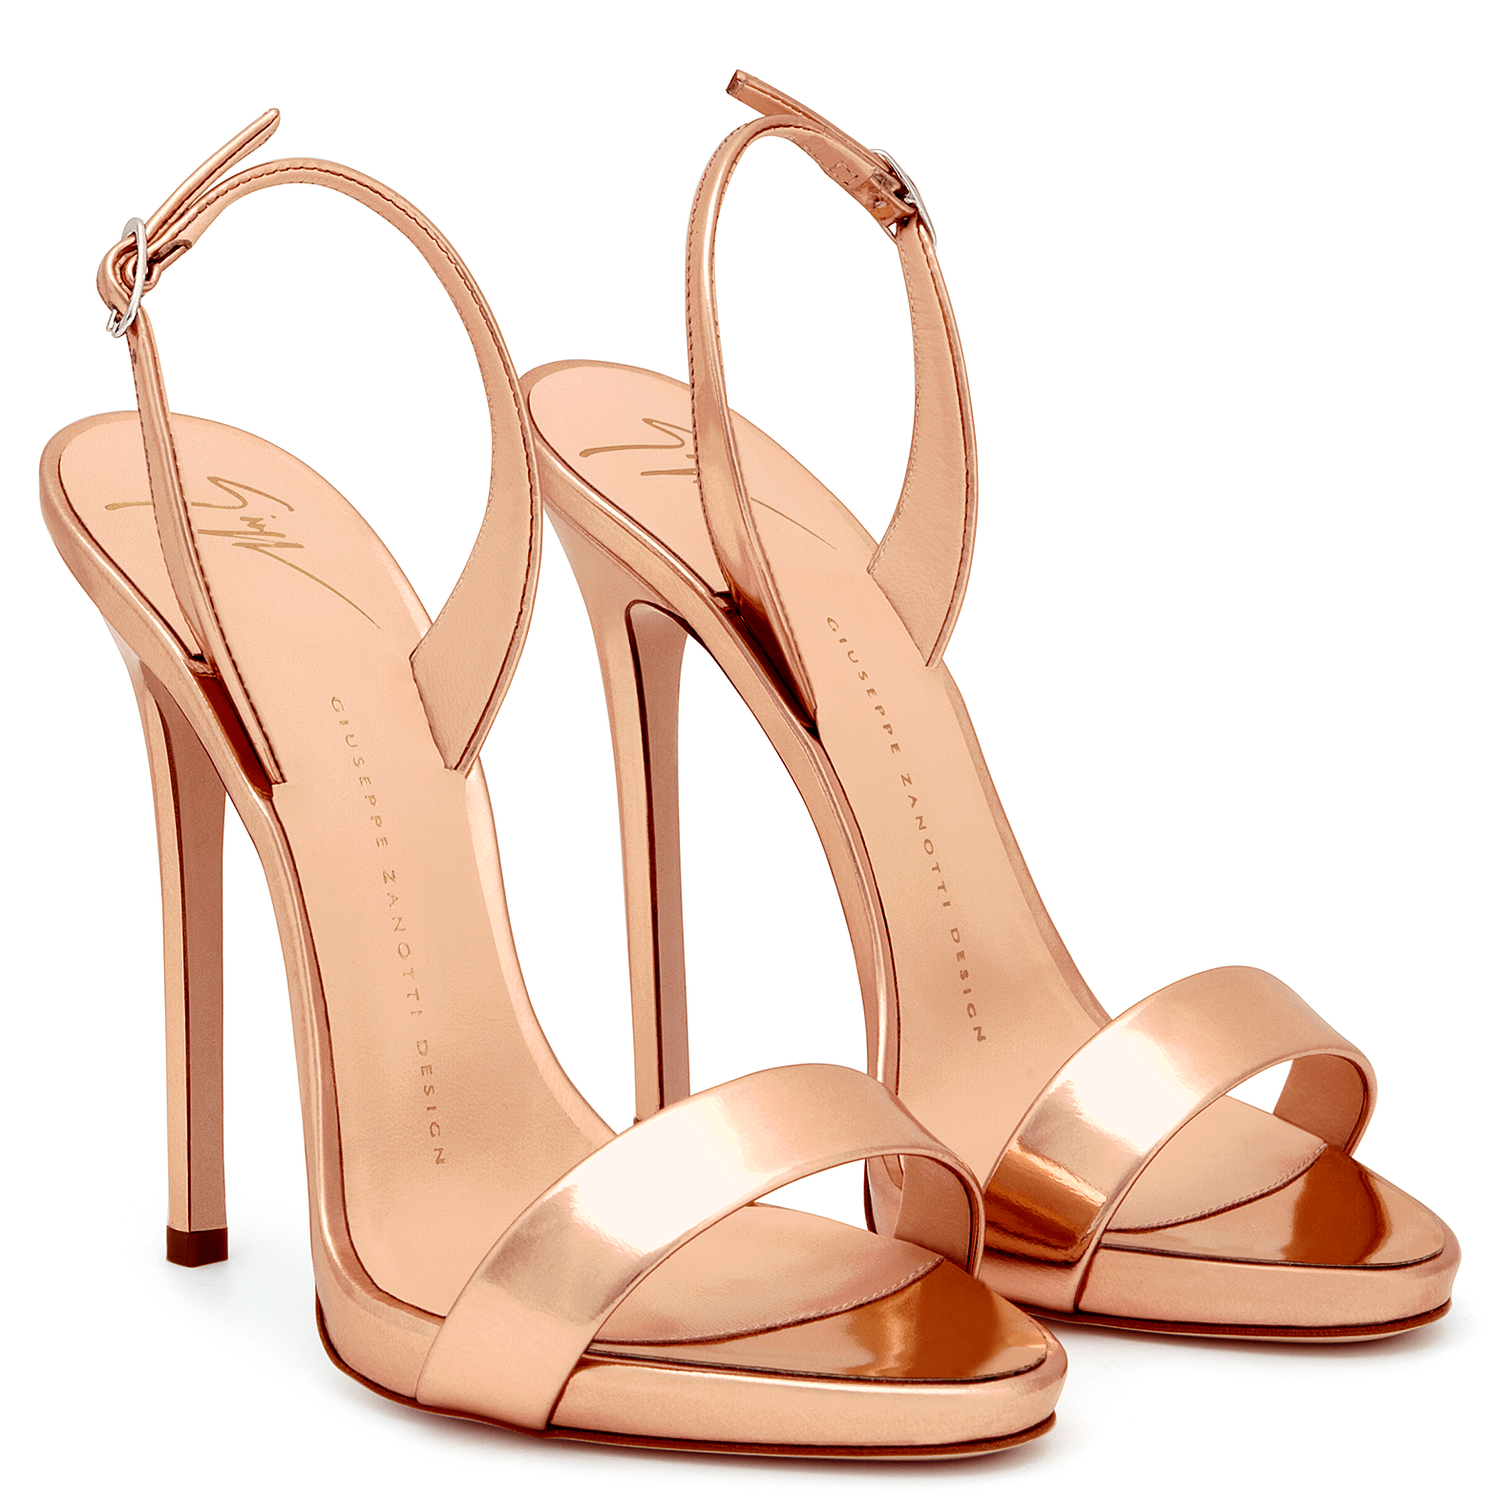 Beautiful shoes · Sophie - Sandals - Search.nav.filters.facet.gold Pink |  Giuseppe